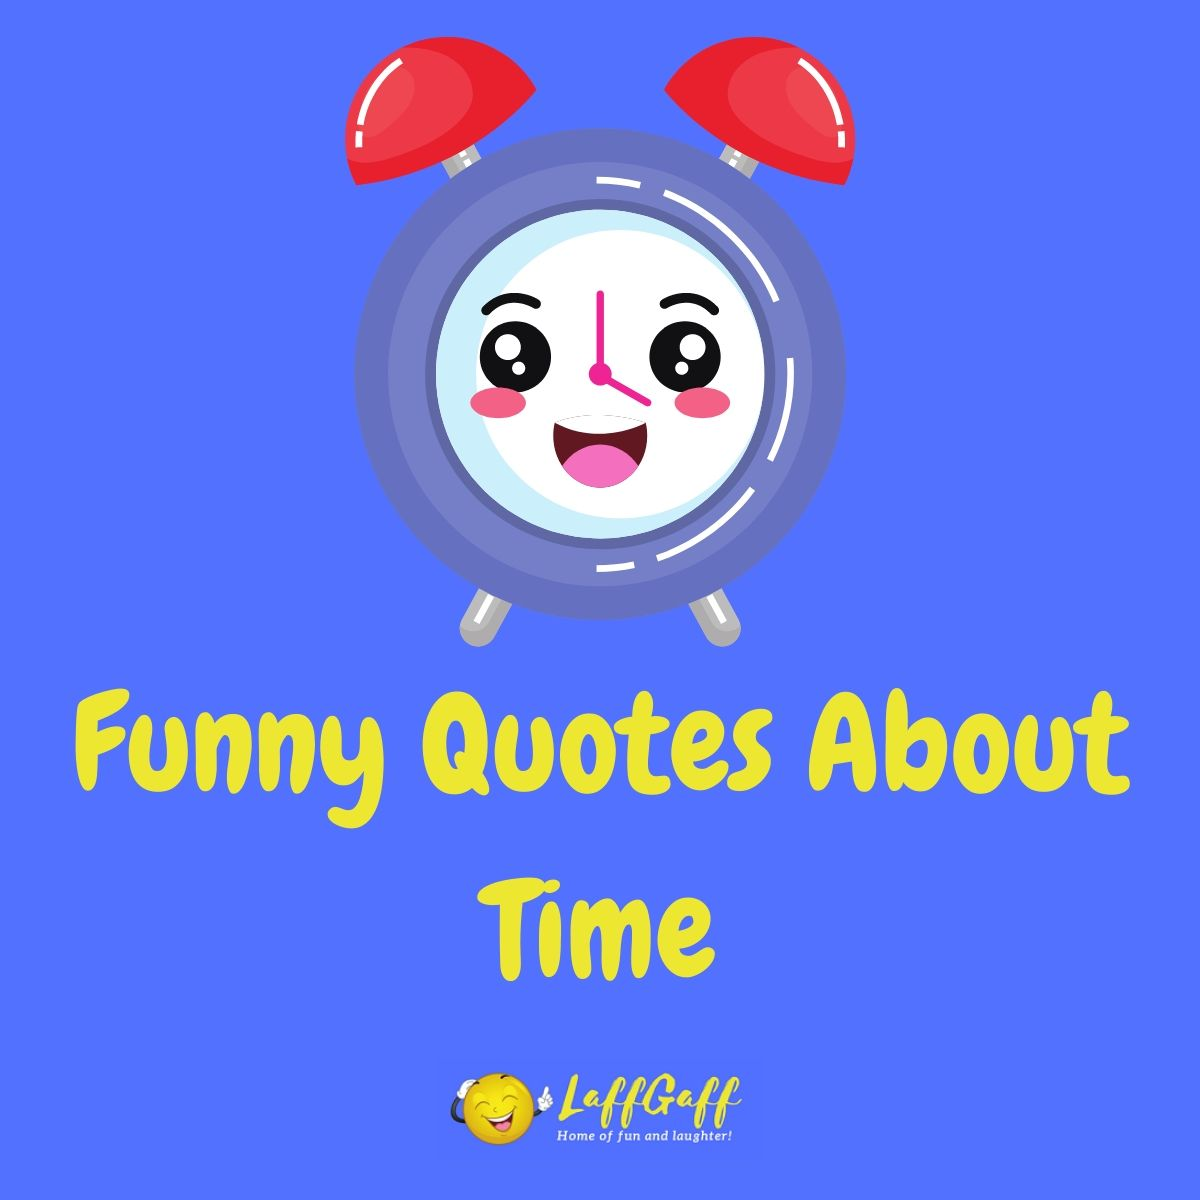 Featured image for a page of funny quotes about time.